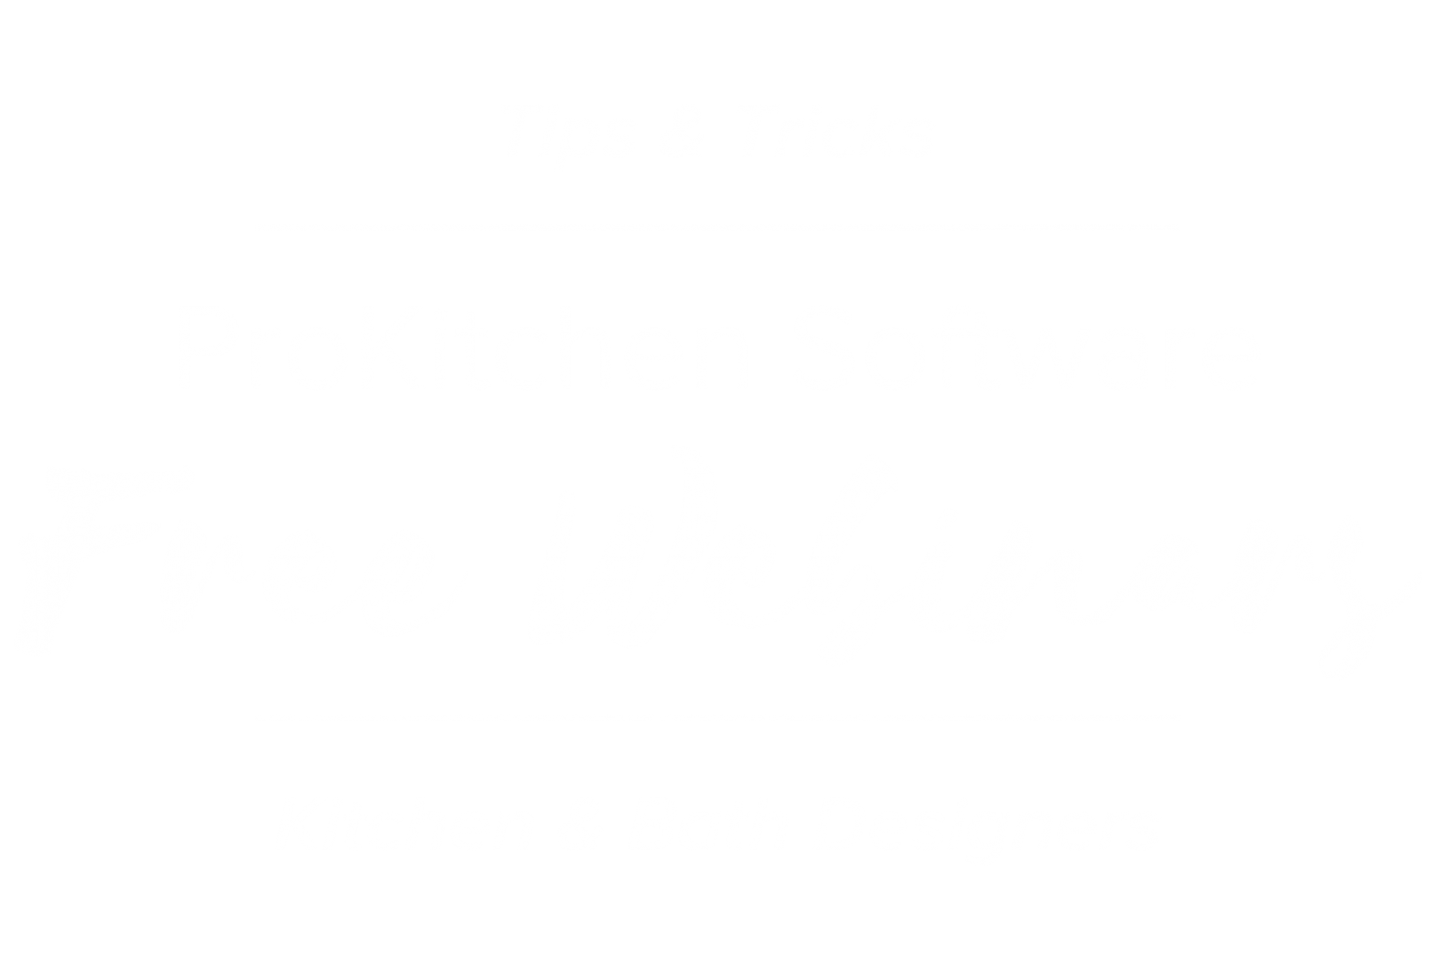 Free Webinars | ProKitchen Software | Kitchen & Bath Designers | Tips & Tricks